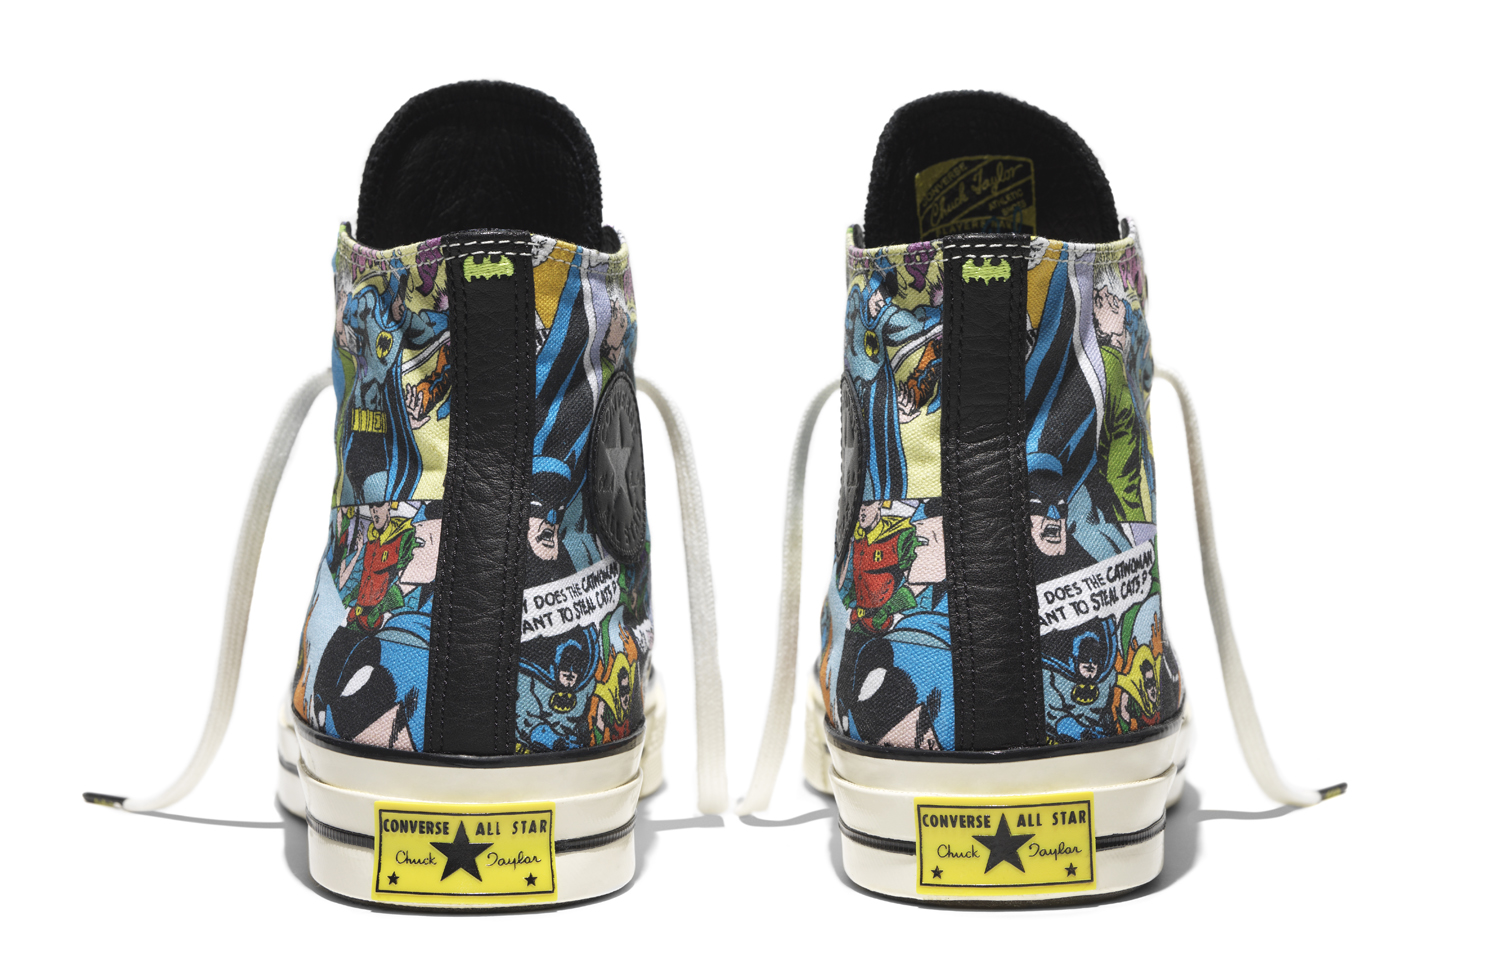 Batman Converse Sneakers Heel